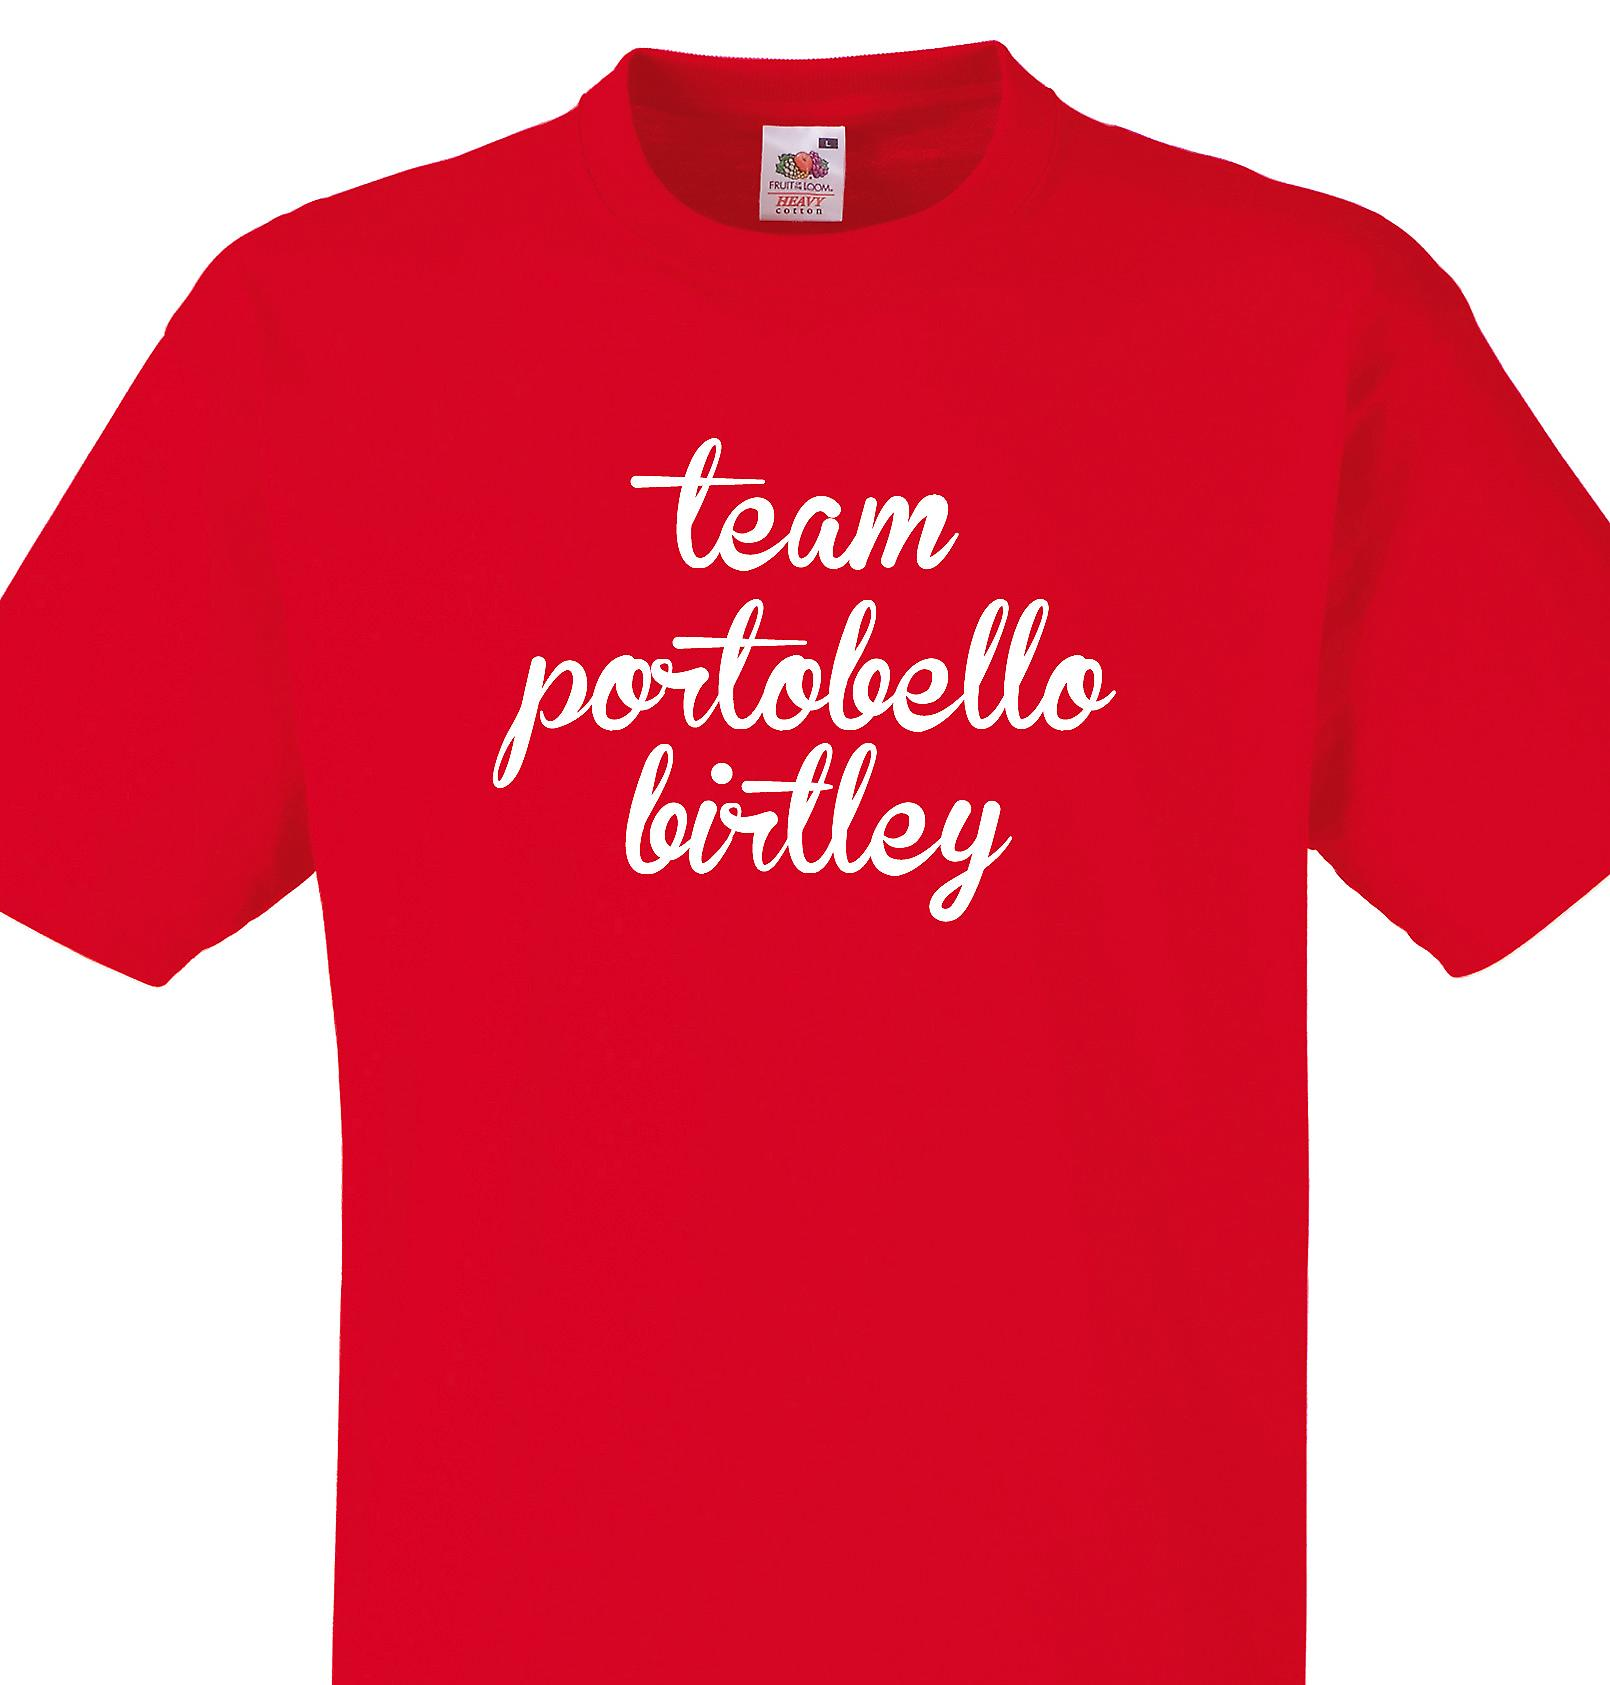 Team Portobello birtley Red T shirt